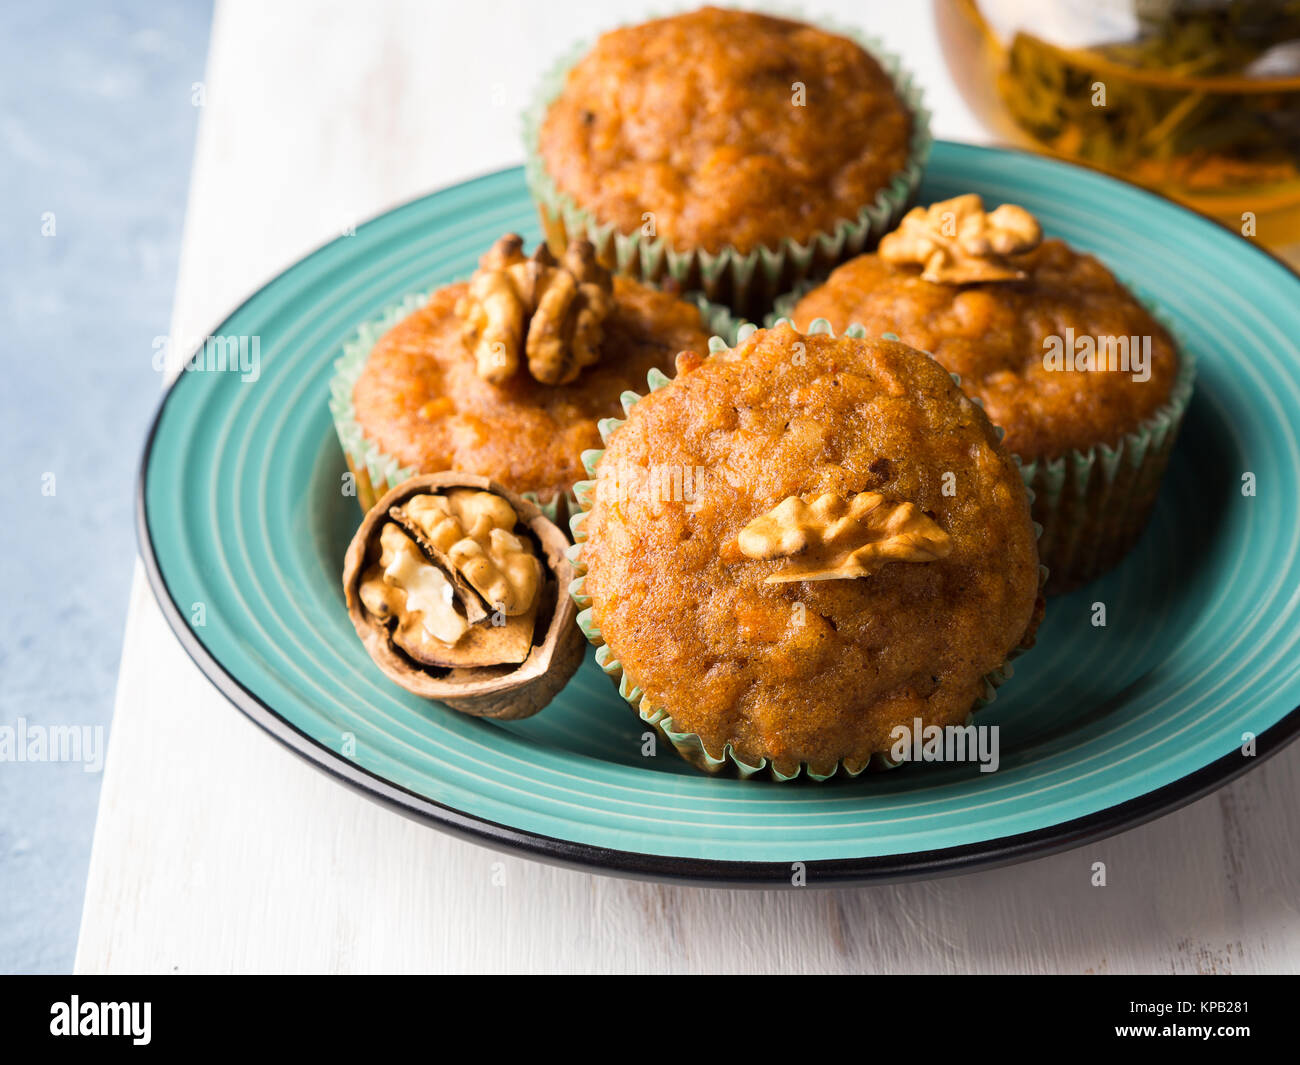 Home made Carrot spiced muffins with walnuts on green dish. - Stock Image